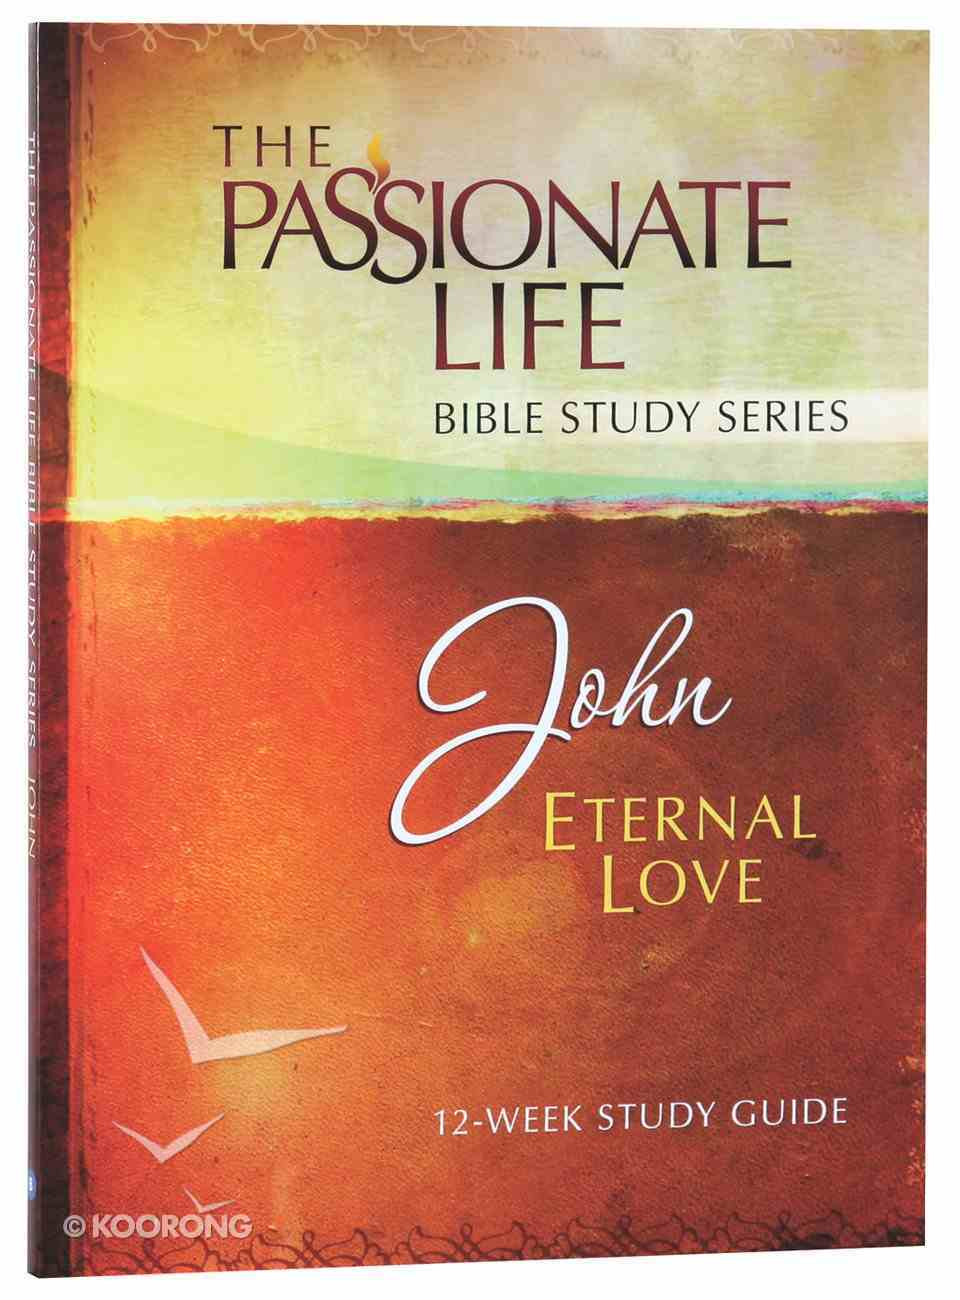 John - Eternal Love (The Passionate Life Bible Study Series) Paperback